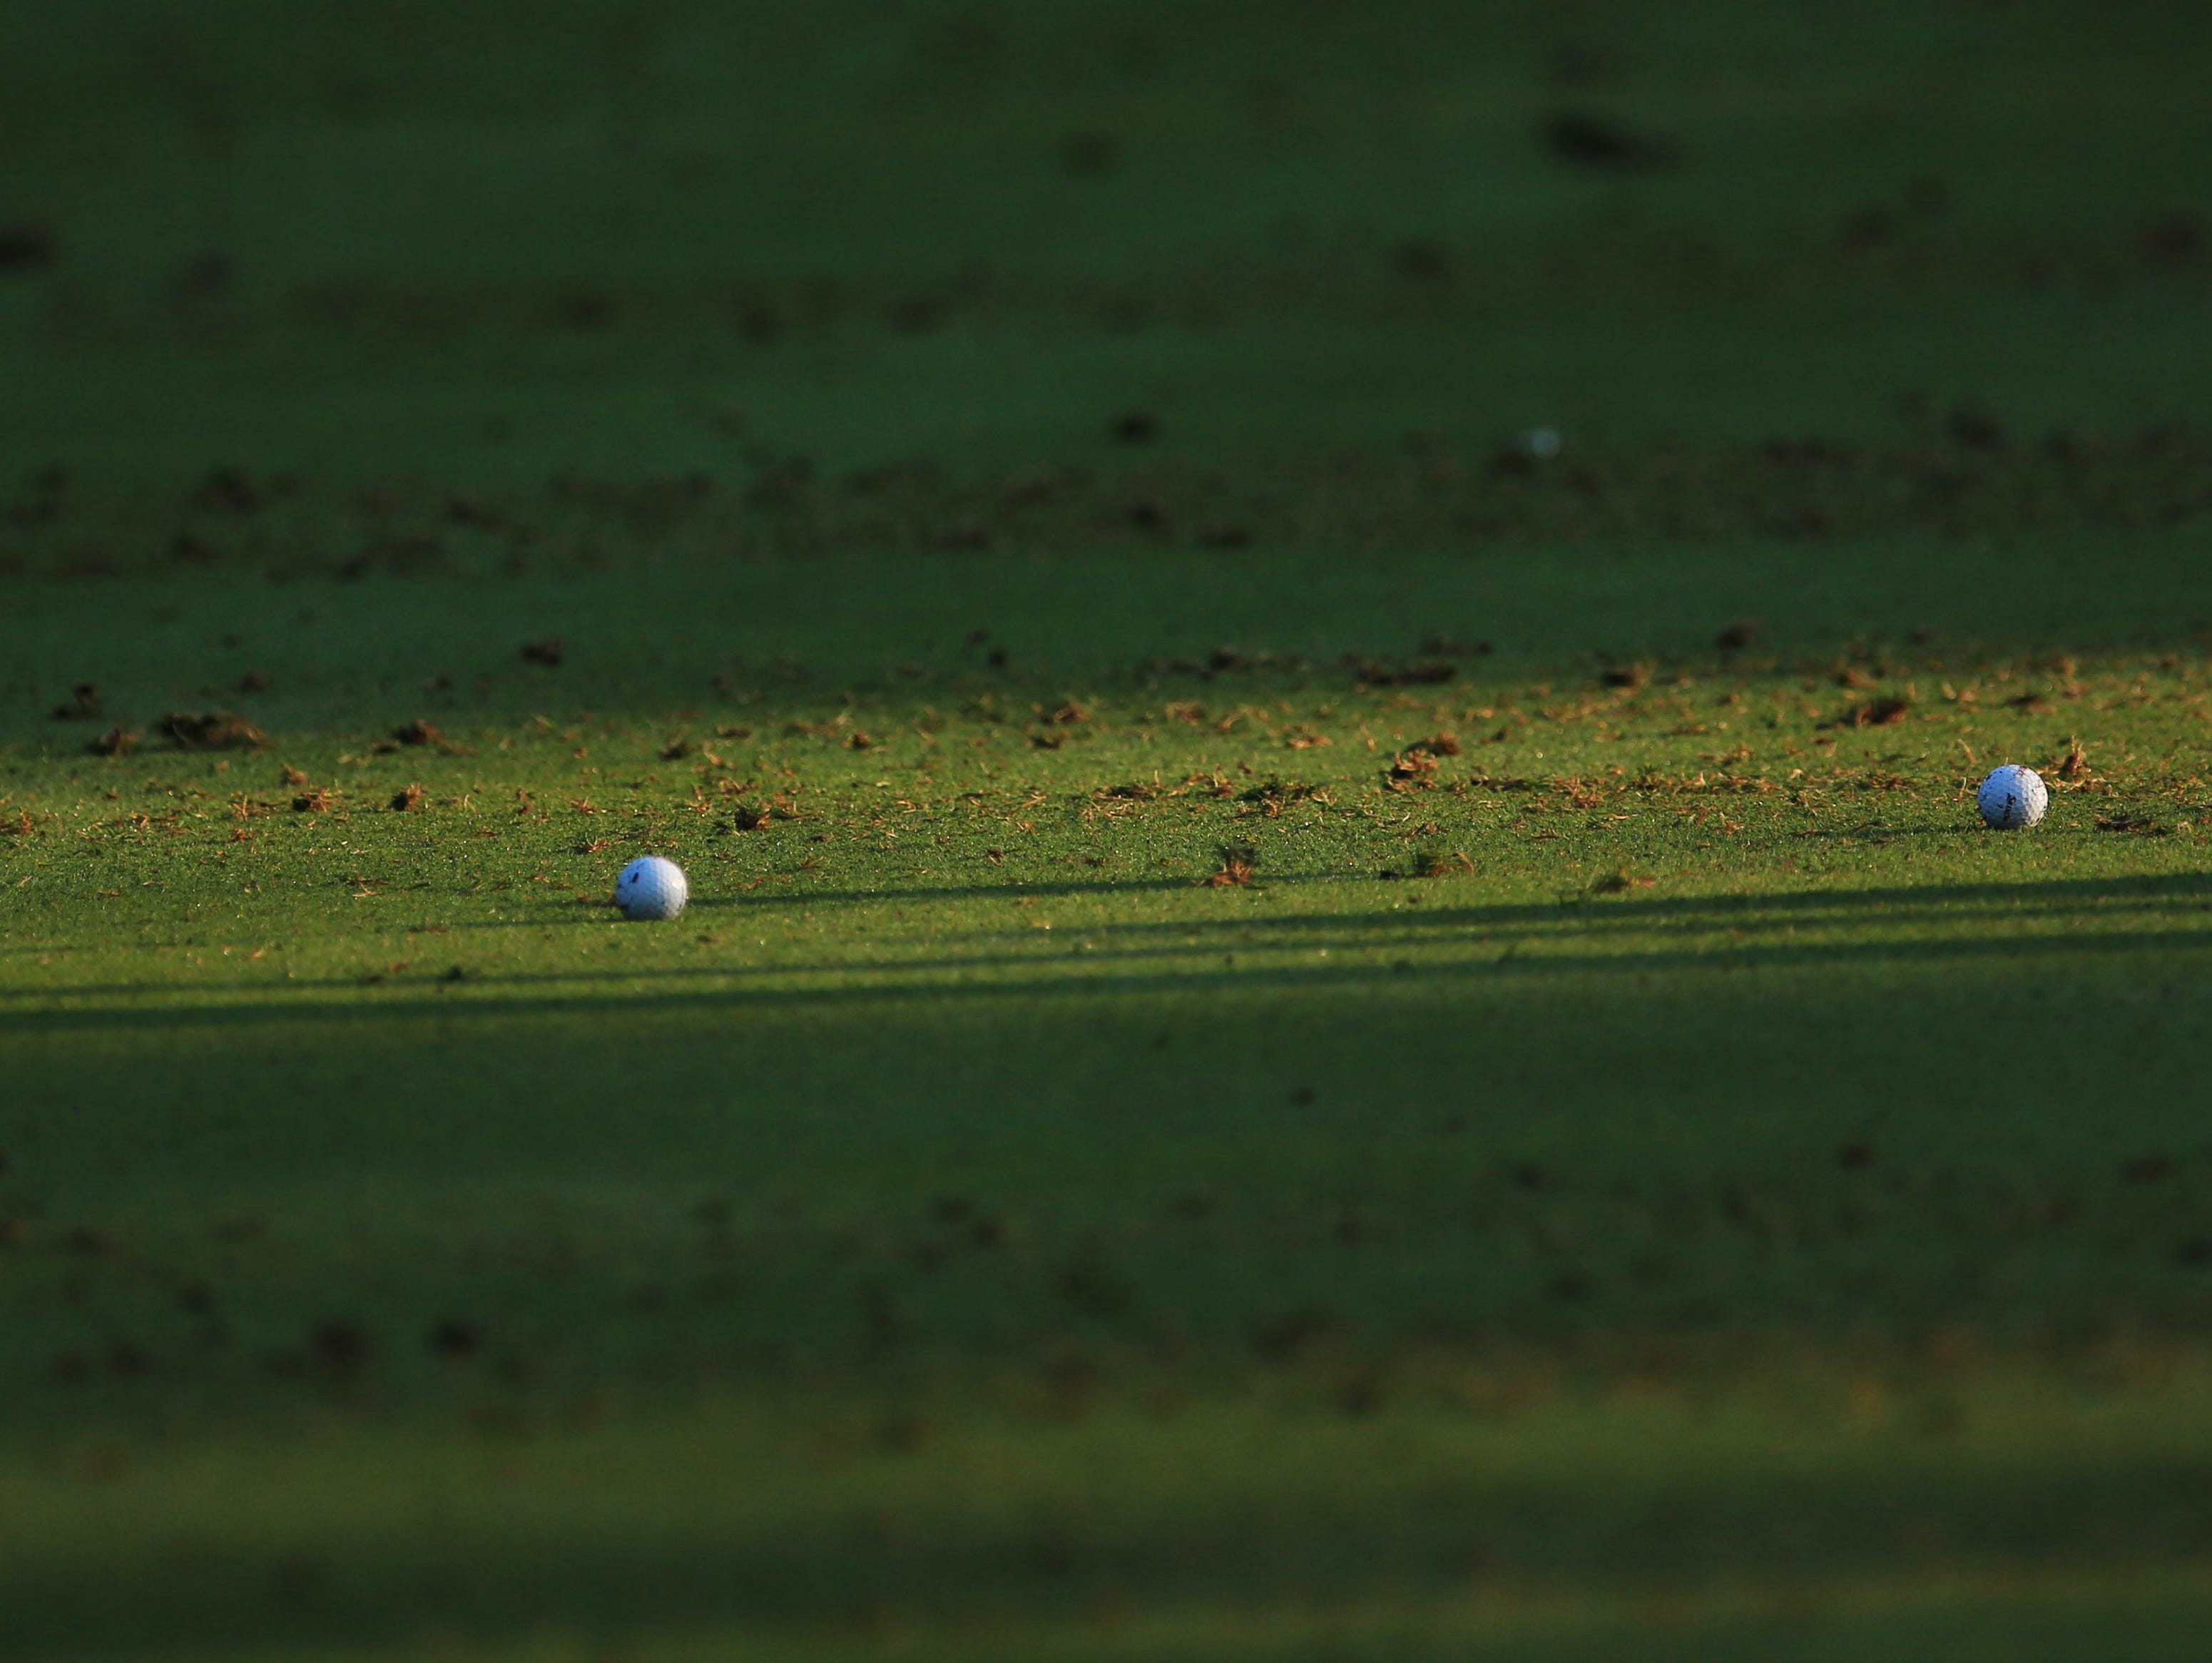 Two lonely golf balls sit on the practice range at Oak Hill Country Club.